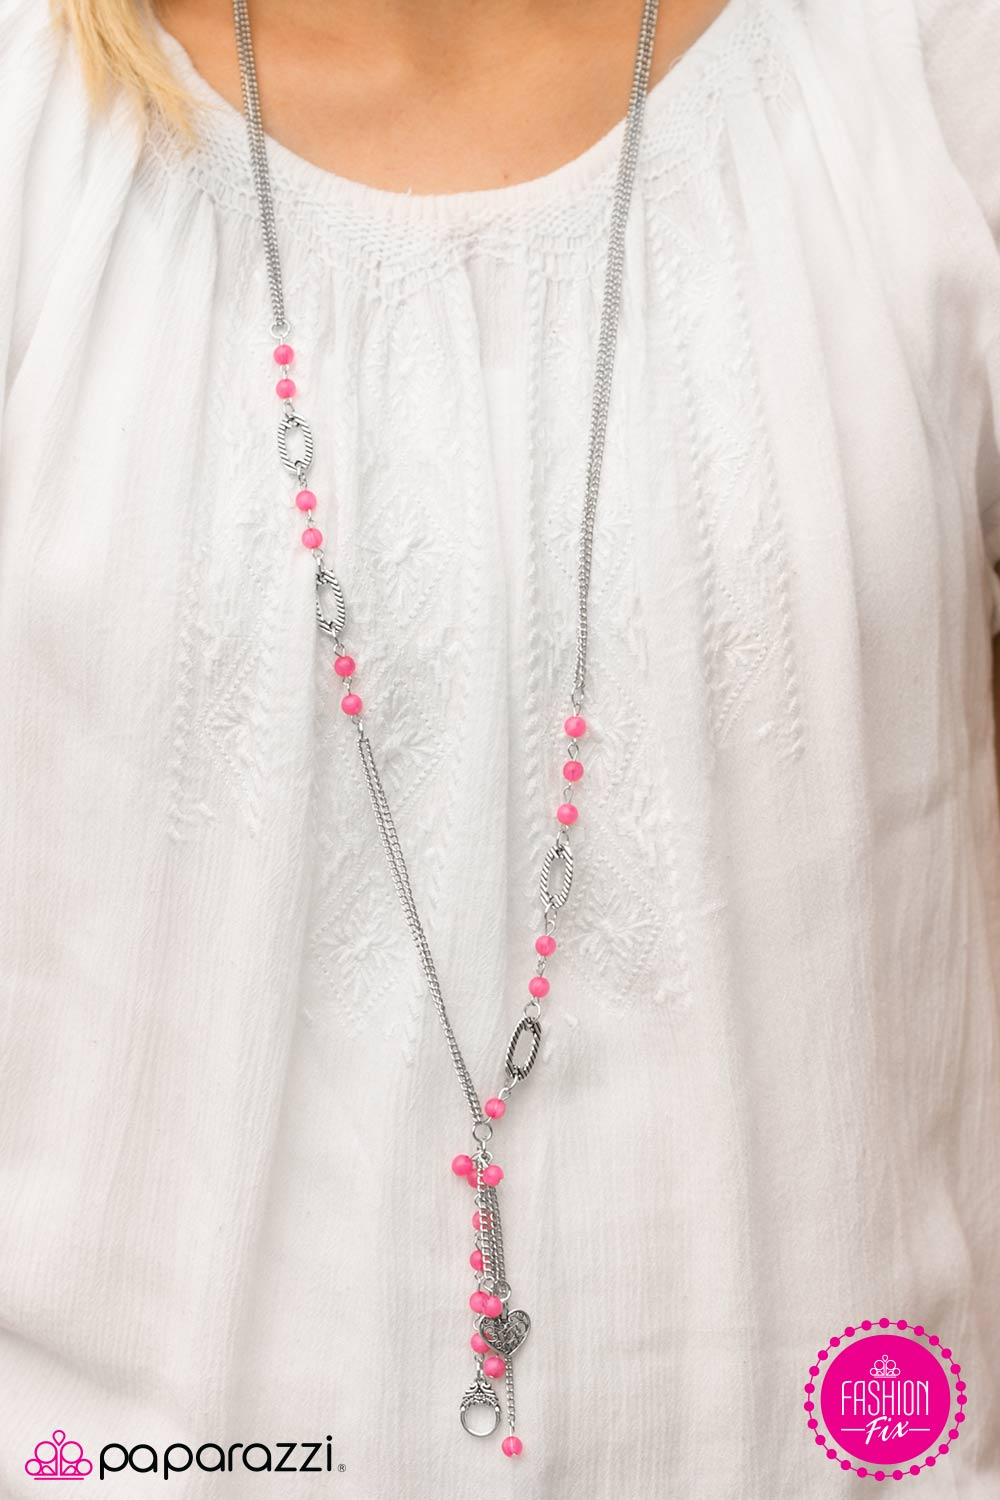 Isnt She Charming – Pink Paparazzi Necklace